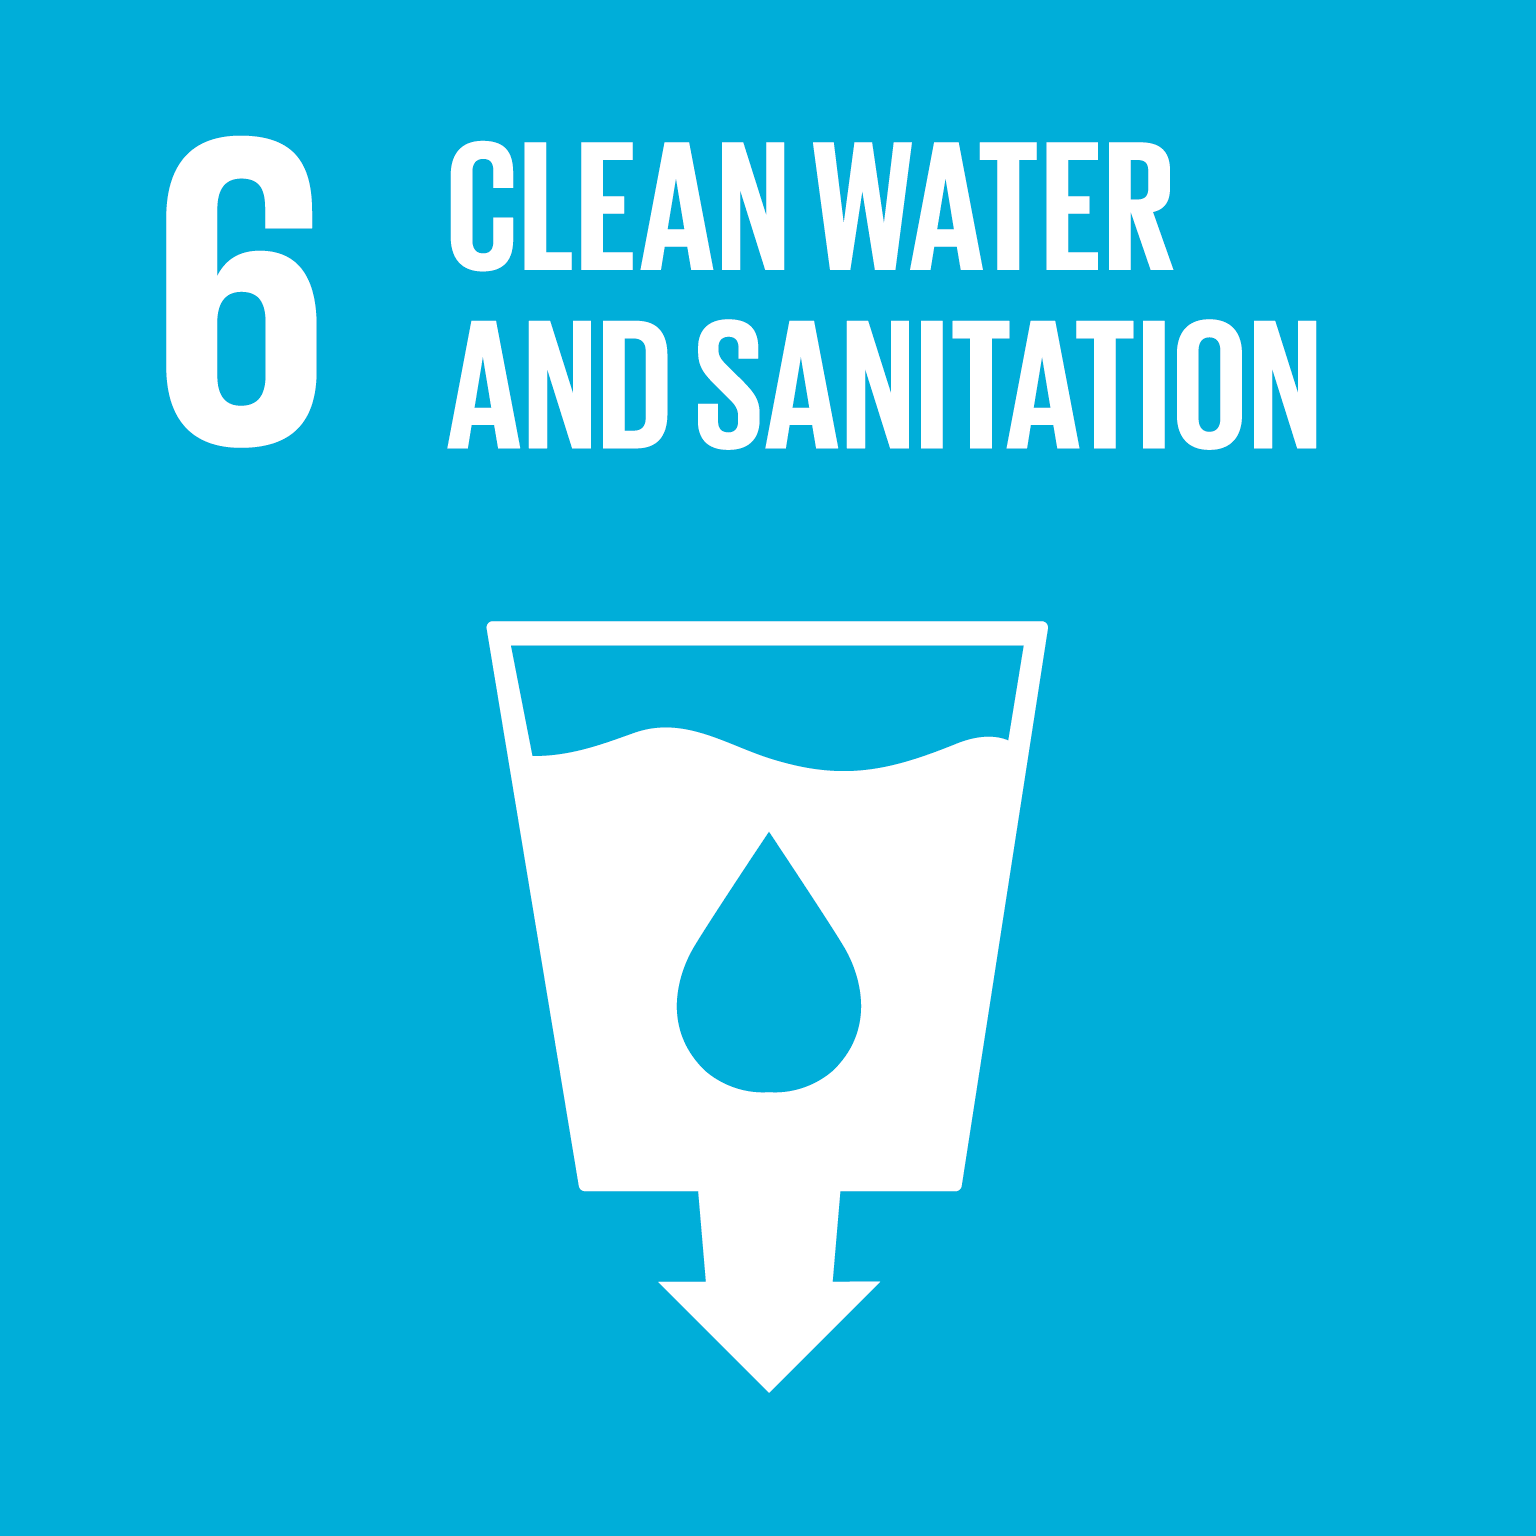 Goal 06: Clean Water and Sanitation